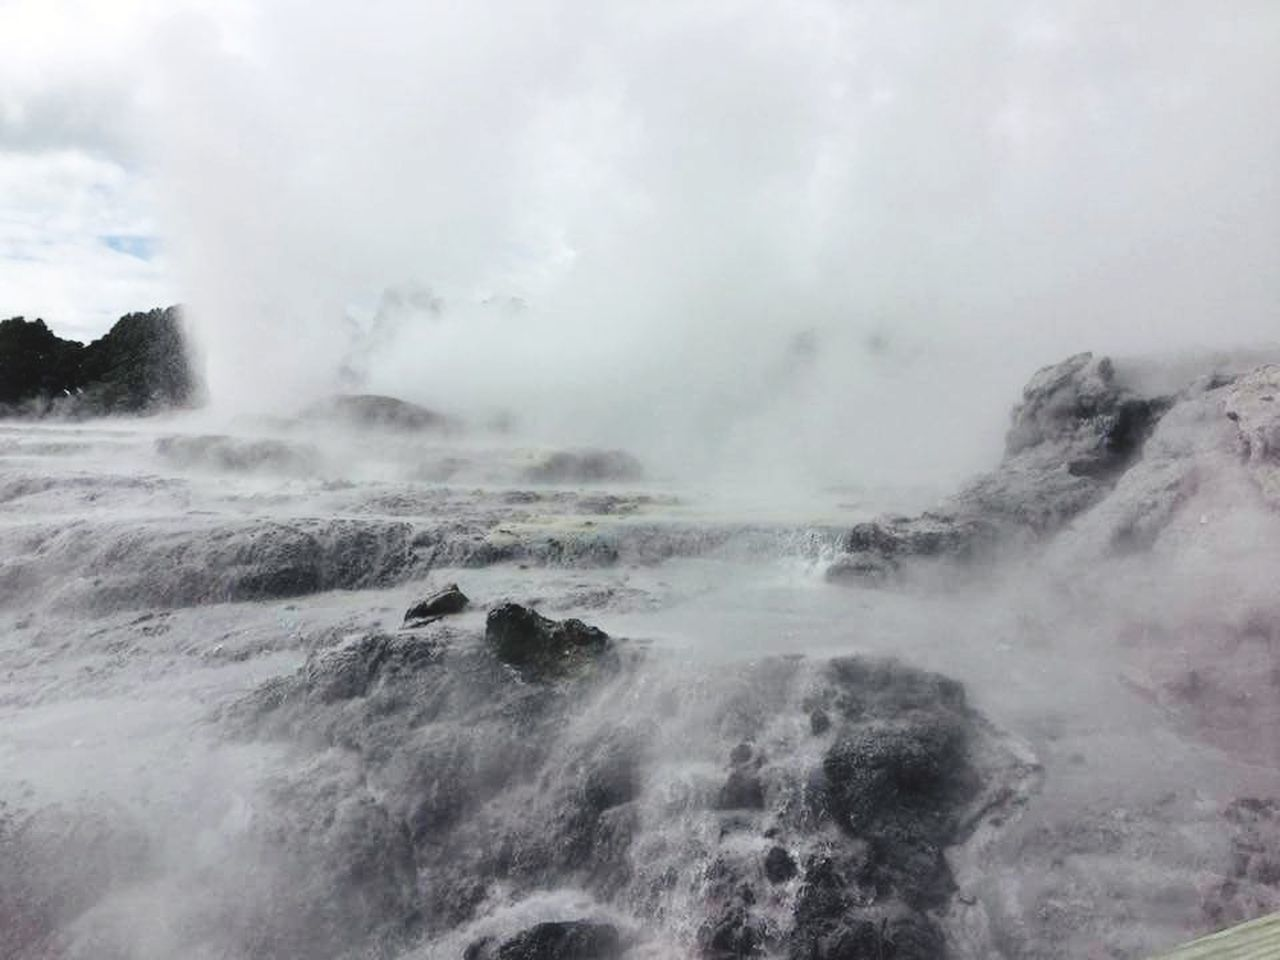 nature, beauty in nature, power in nature, no people, water, steam, outdoors, scenics, day, landscape, physical geography, motion, geyser, hot spring, sky, fog